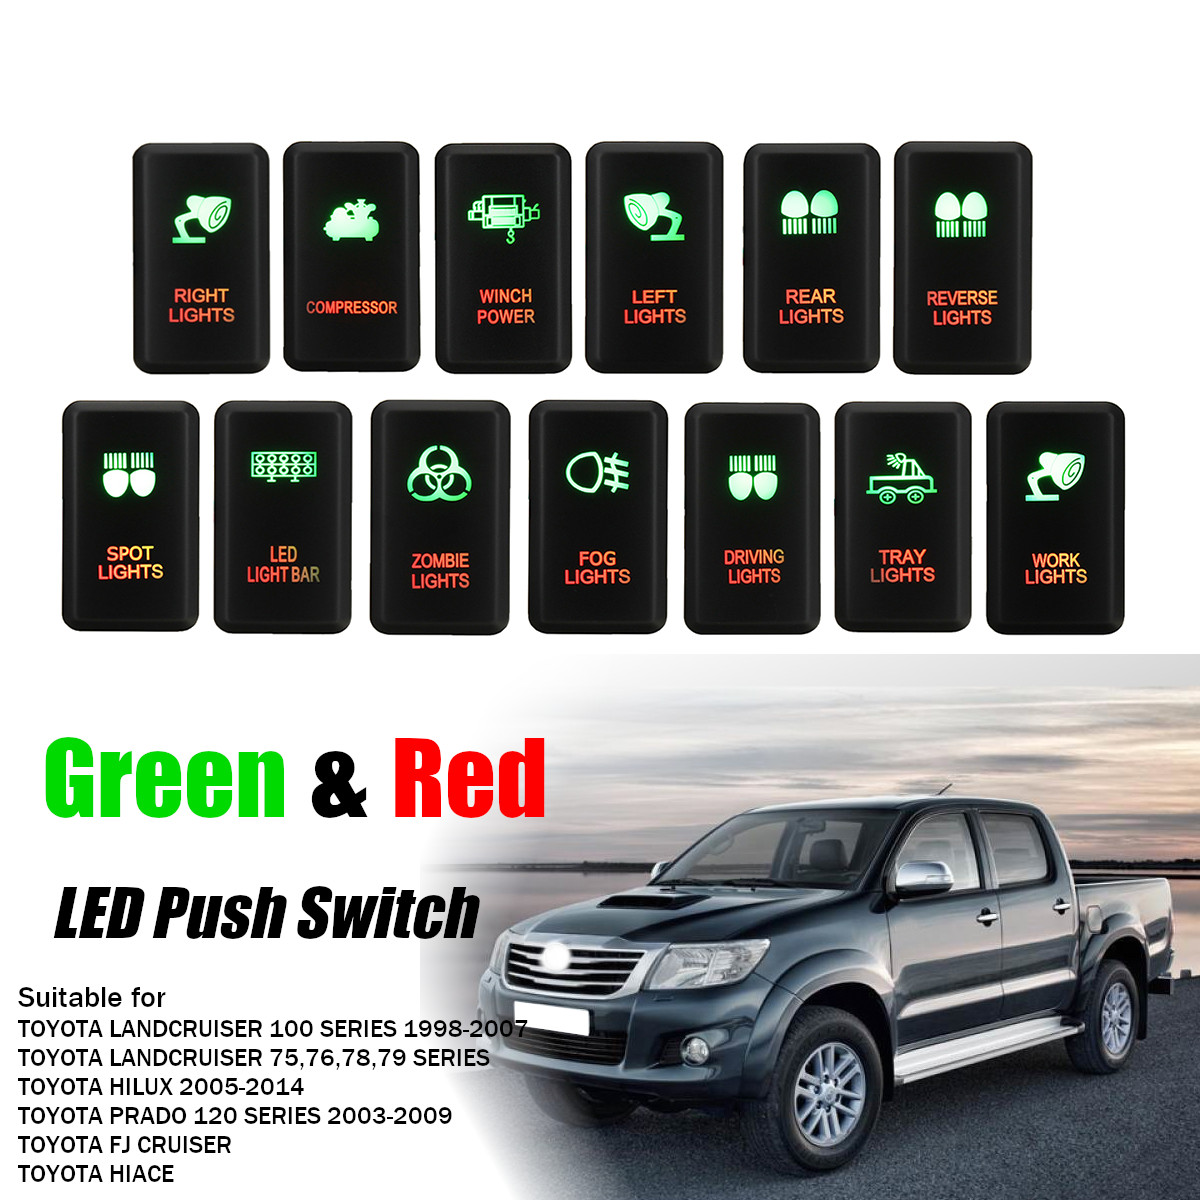 LED Light Bar Dash Push Switch for Toyota Hilux Landcruiser W// Wiring Harness